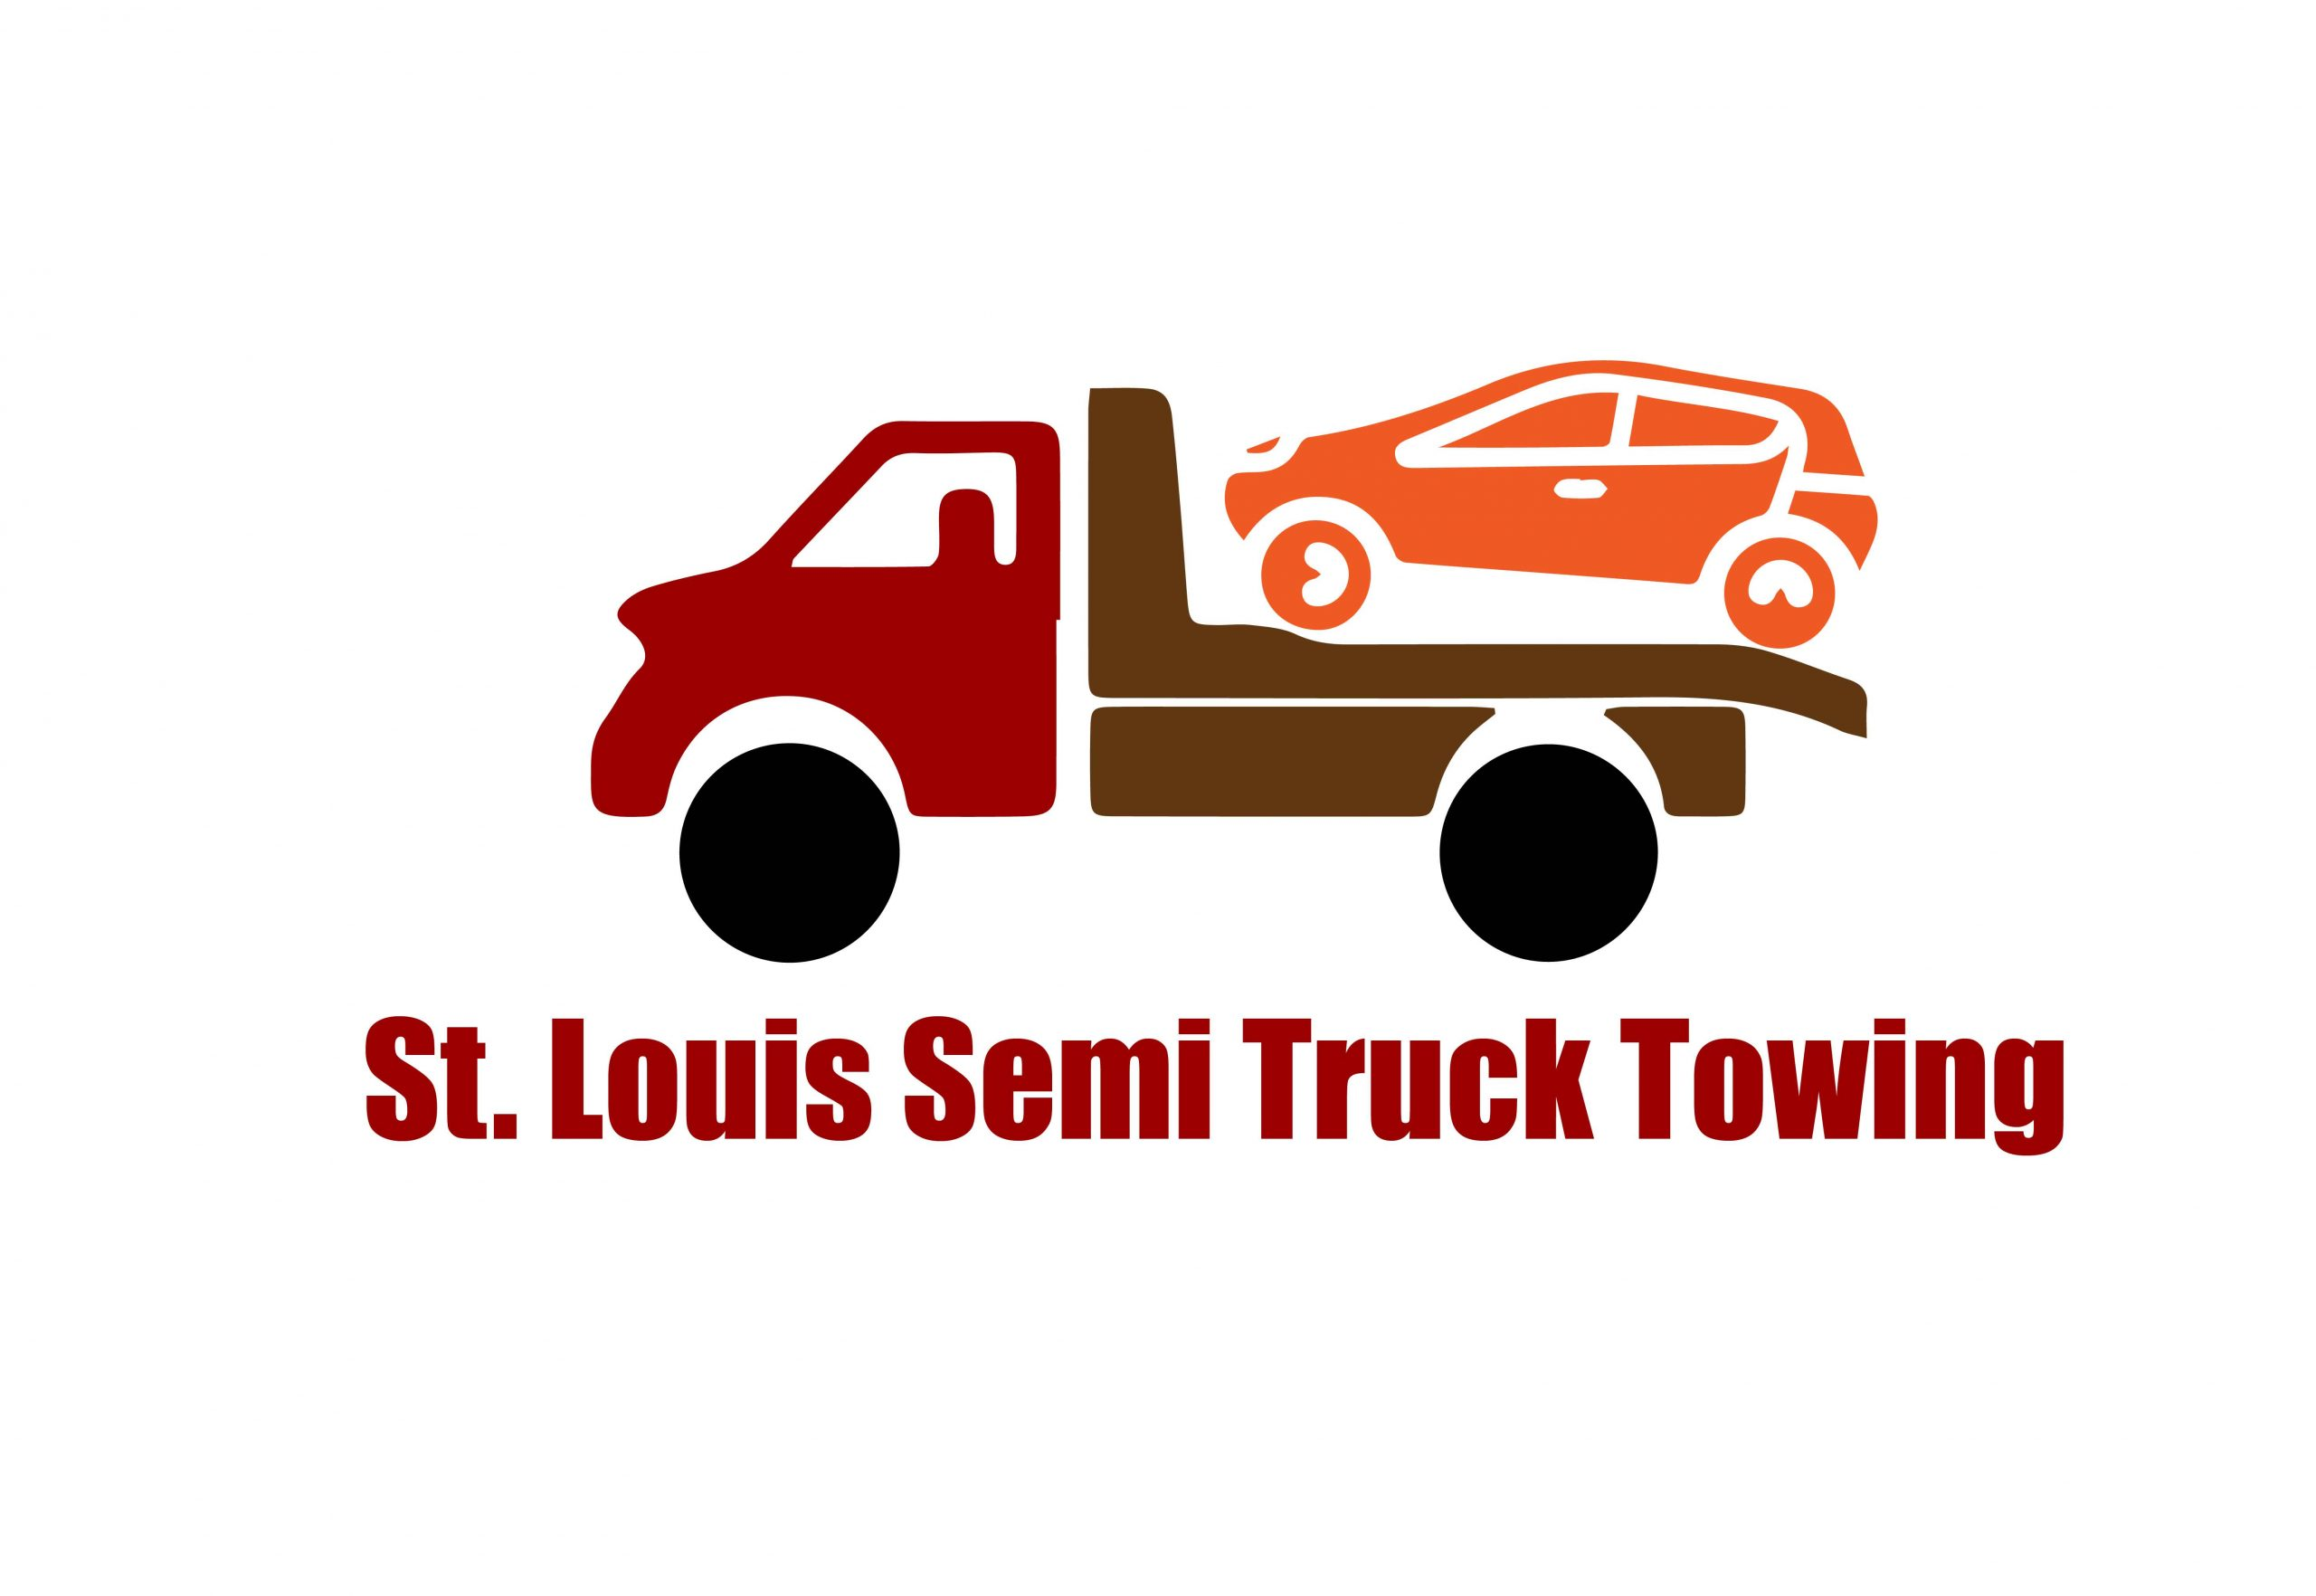 St. Louis Semi Truck Towing